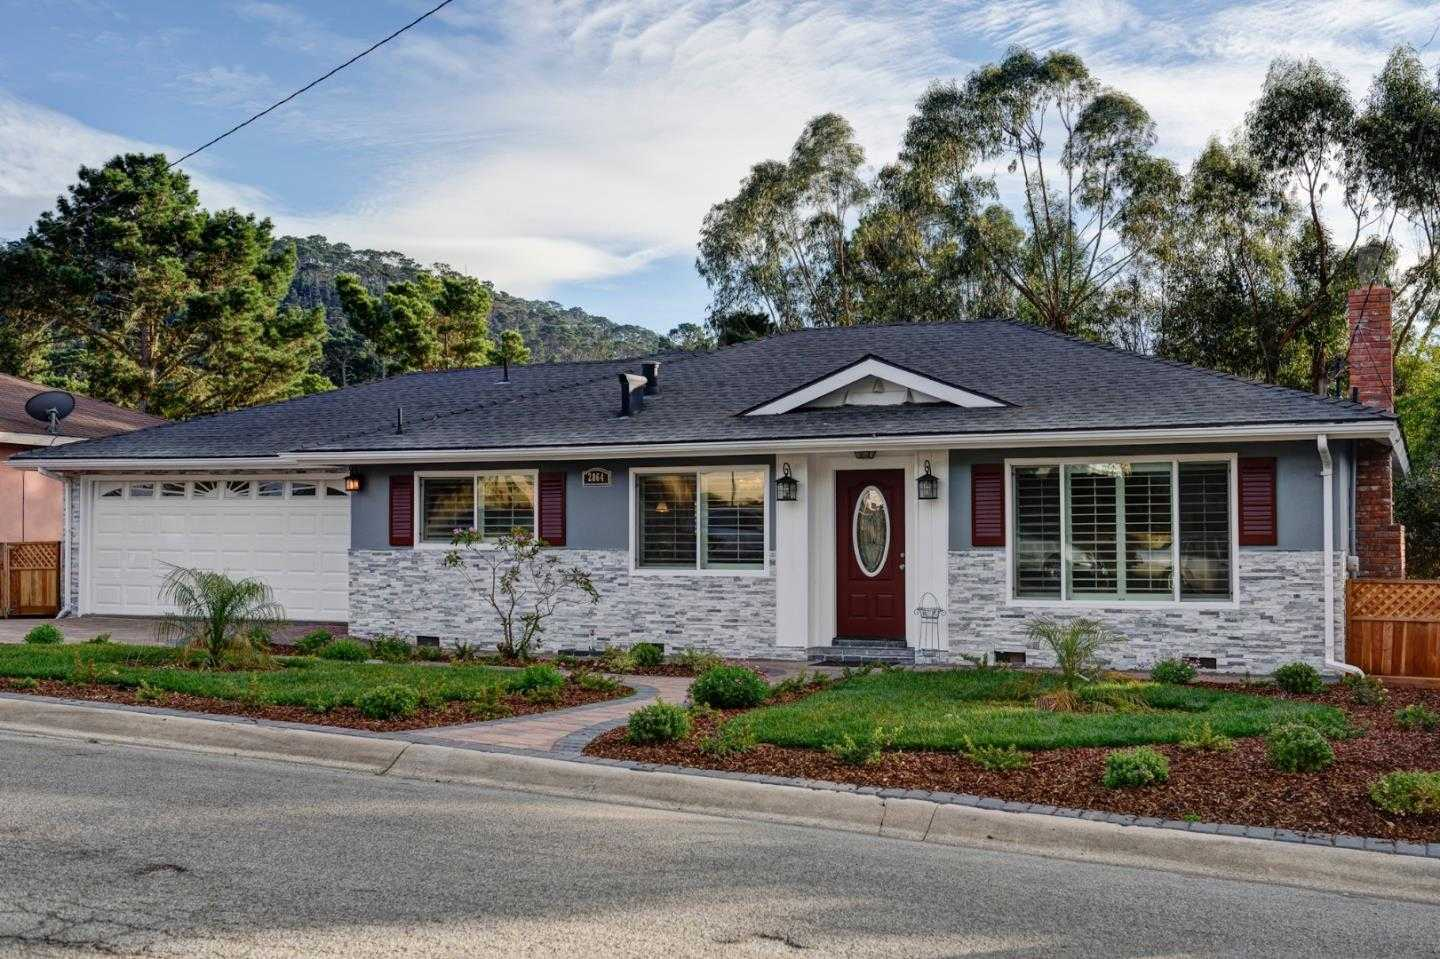 $1,025,000 - 4Br/3Ba -  for Sale in Pacific Grove